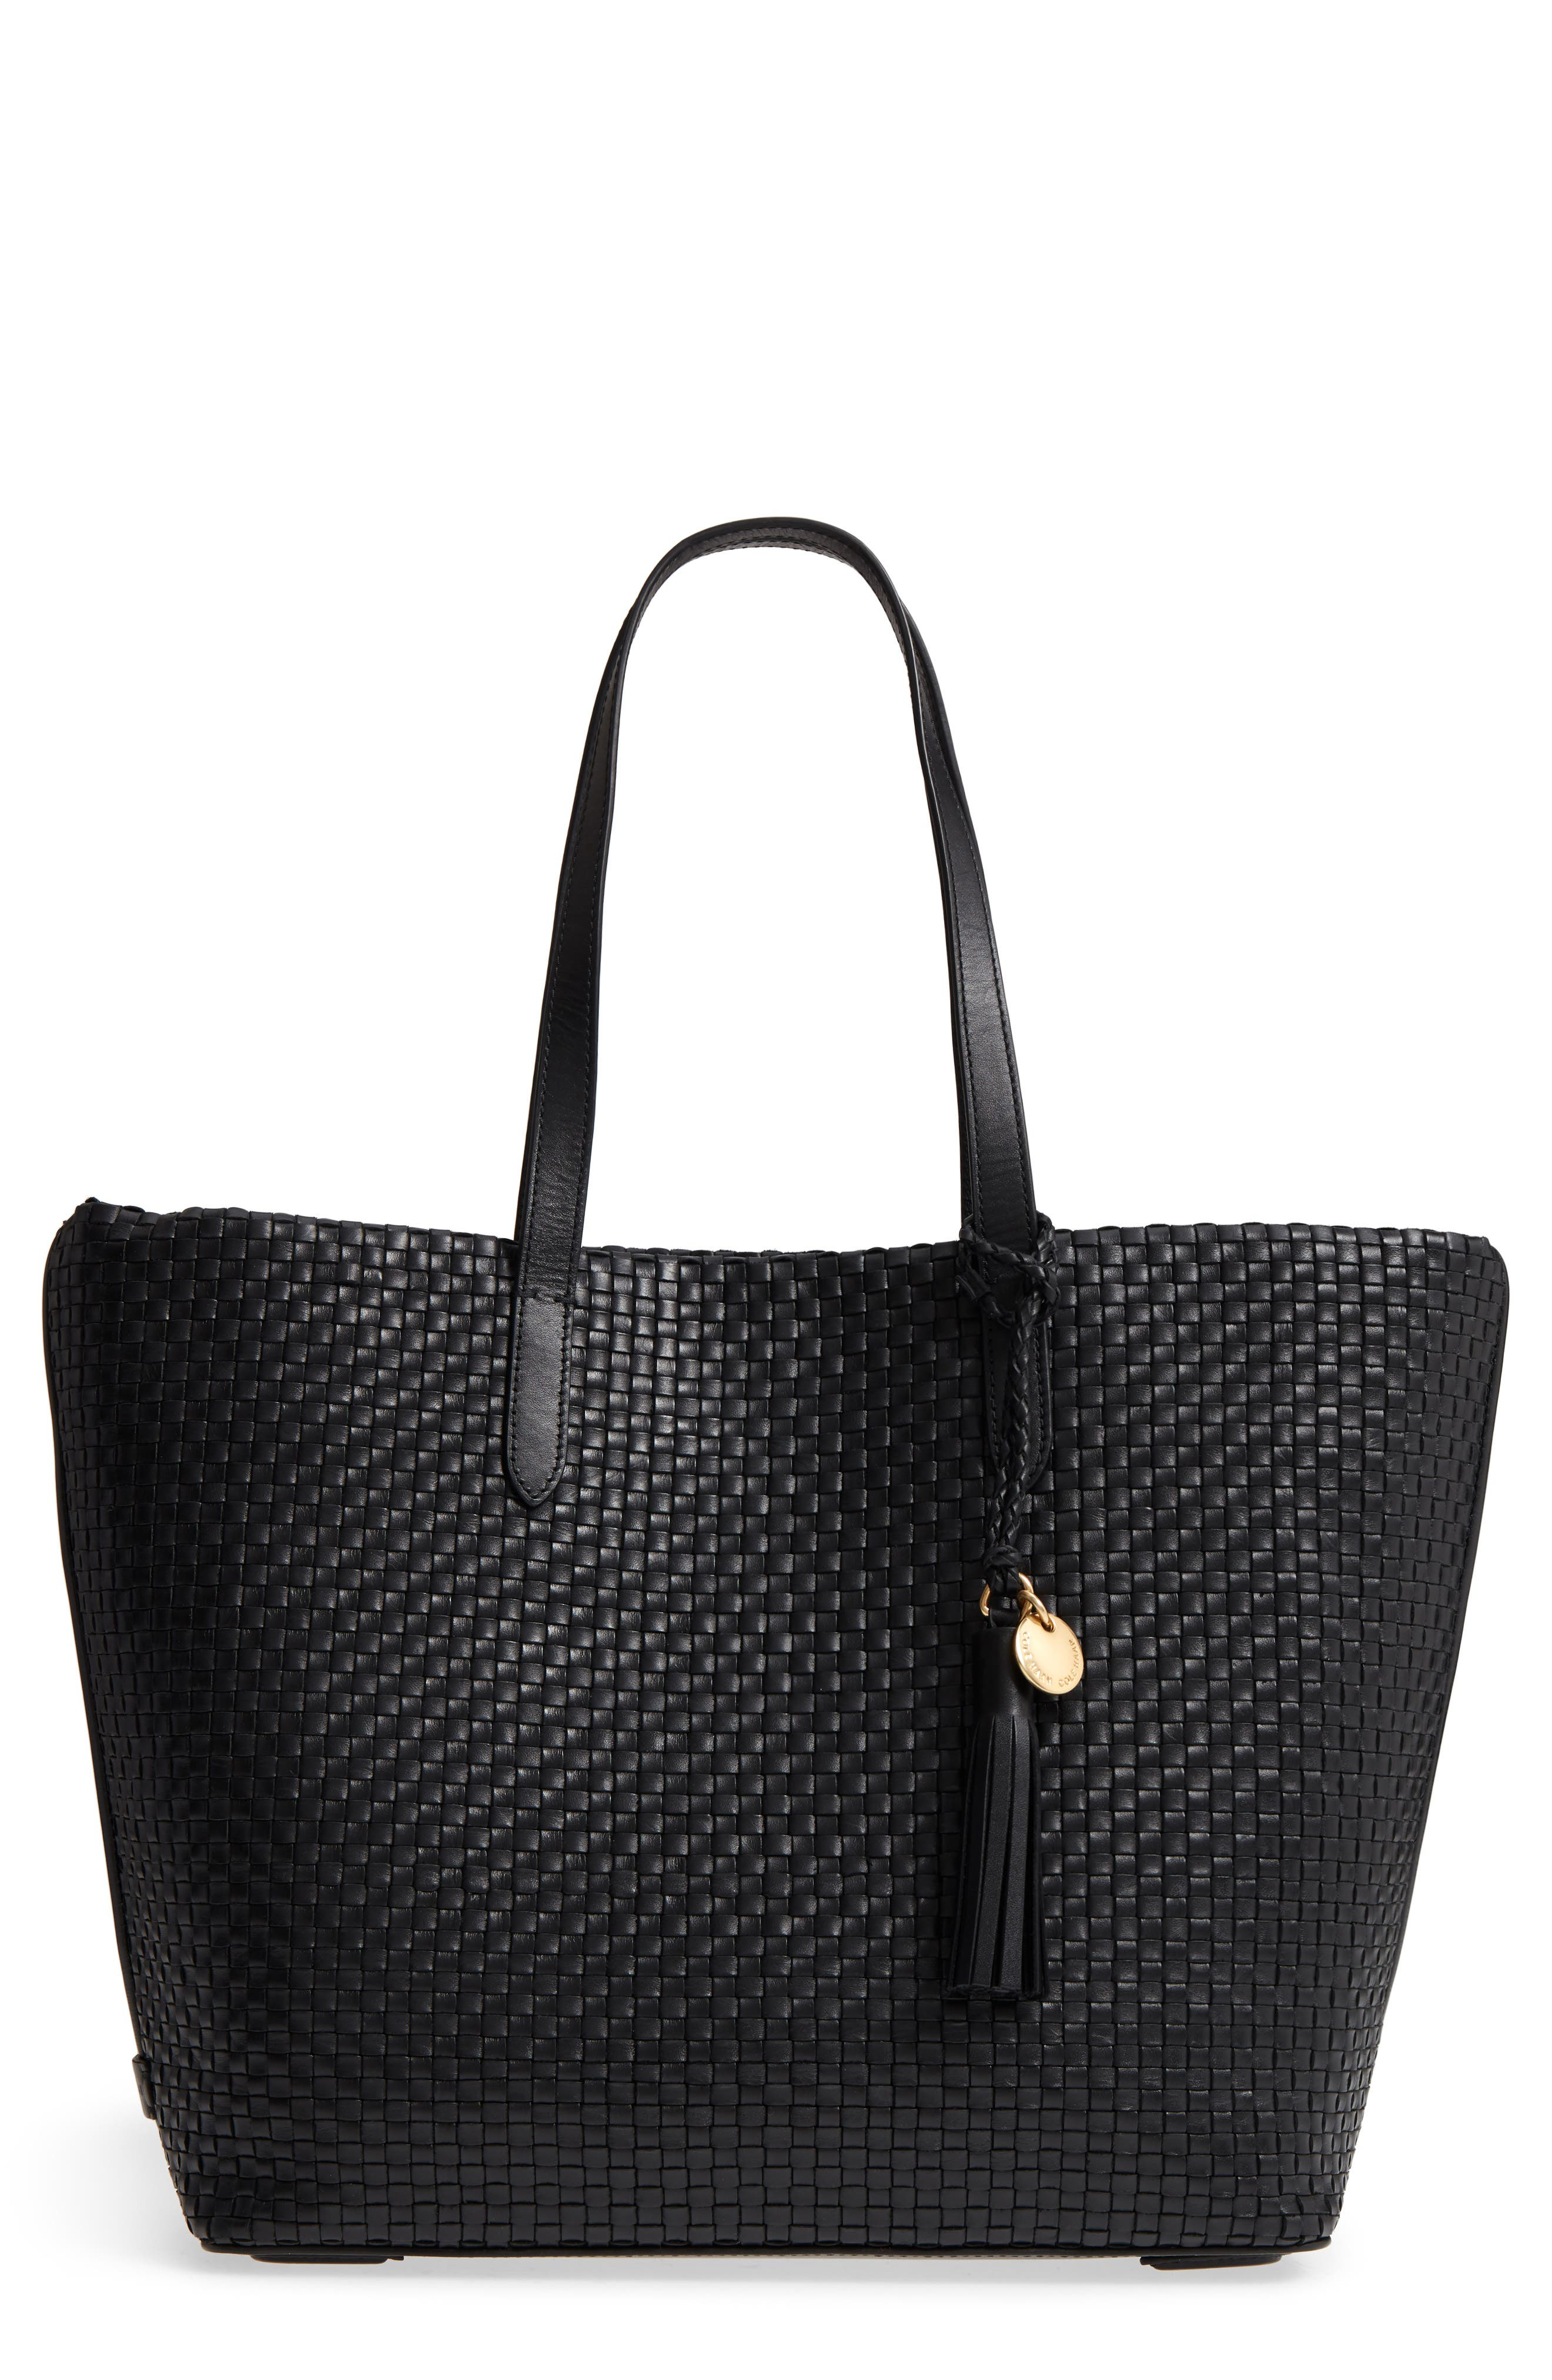 Payson RFID Woven Leather Tote,                         Main,                         color, Black